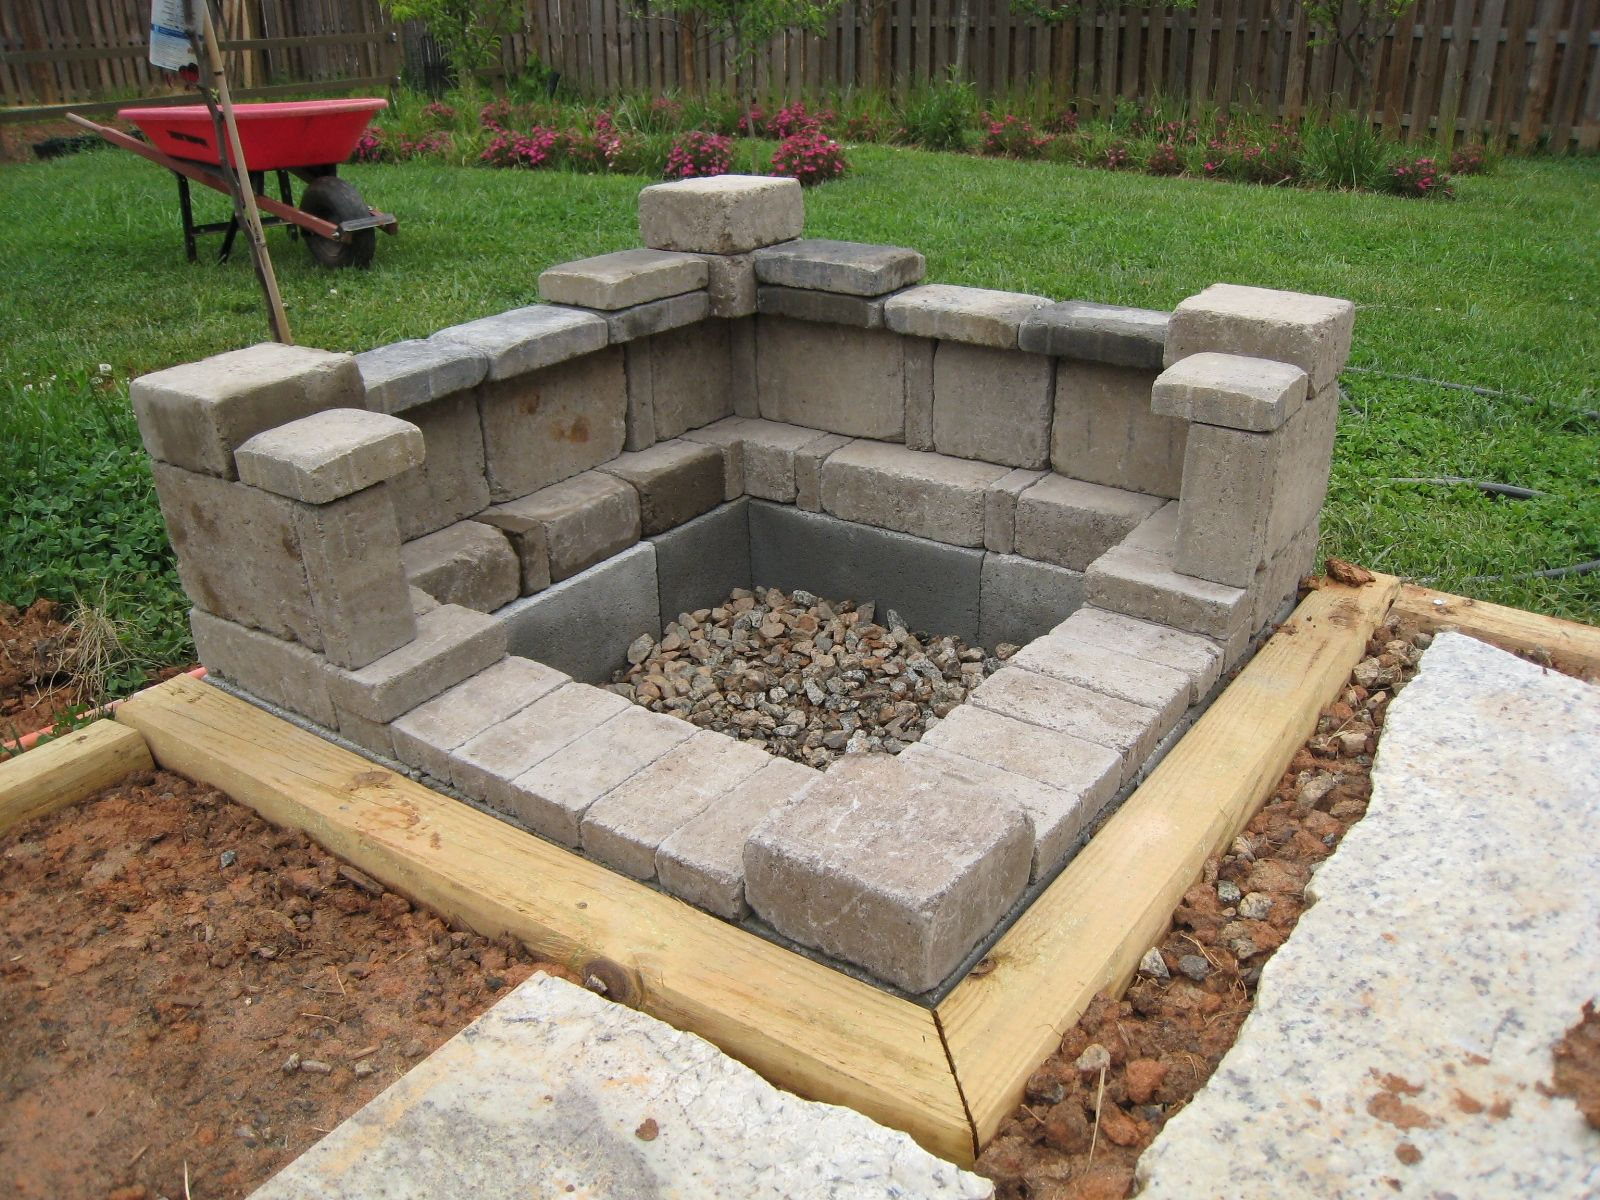 how to build an outdoor fireplace with cinder blocks ... on Outdoor Fireplace With Cinder Blocks id=23805